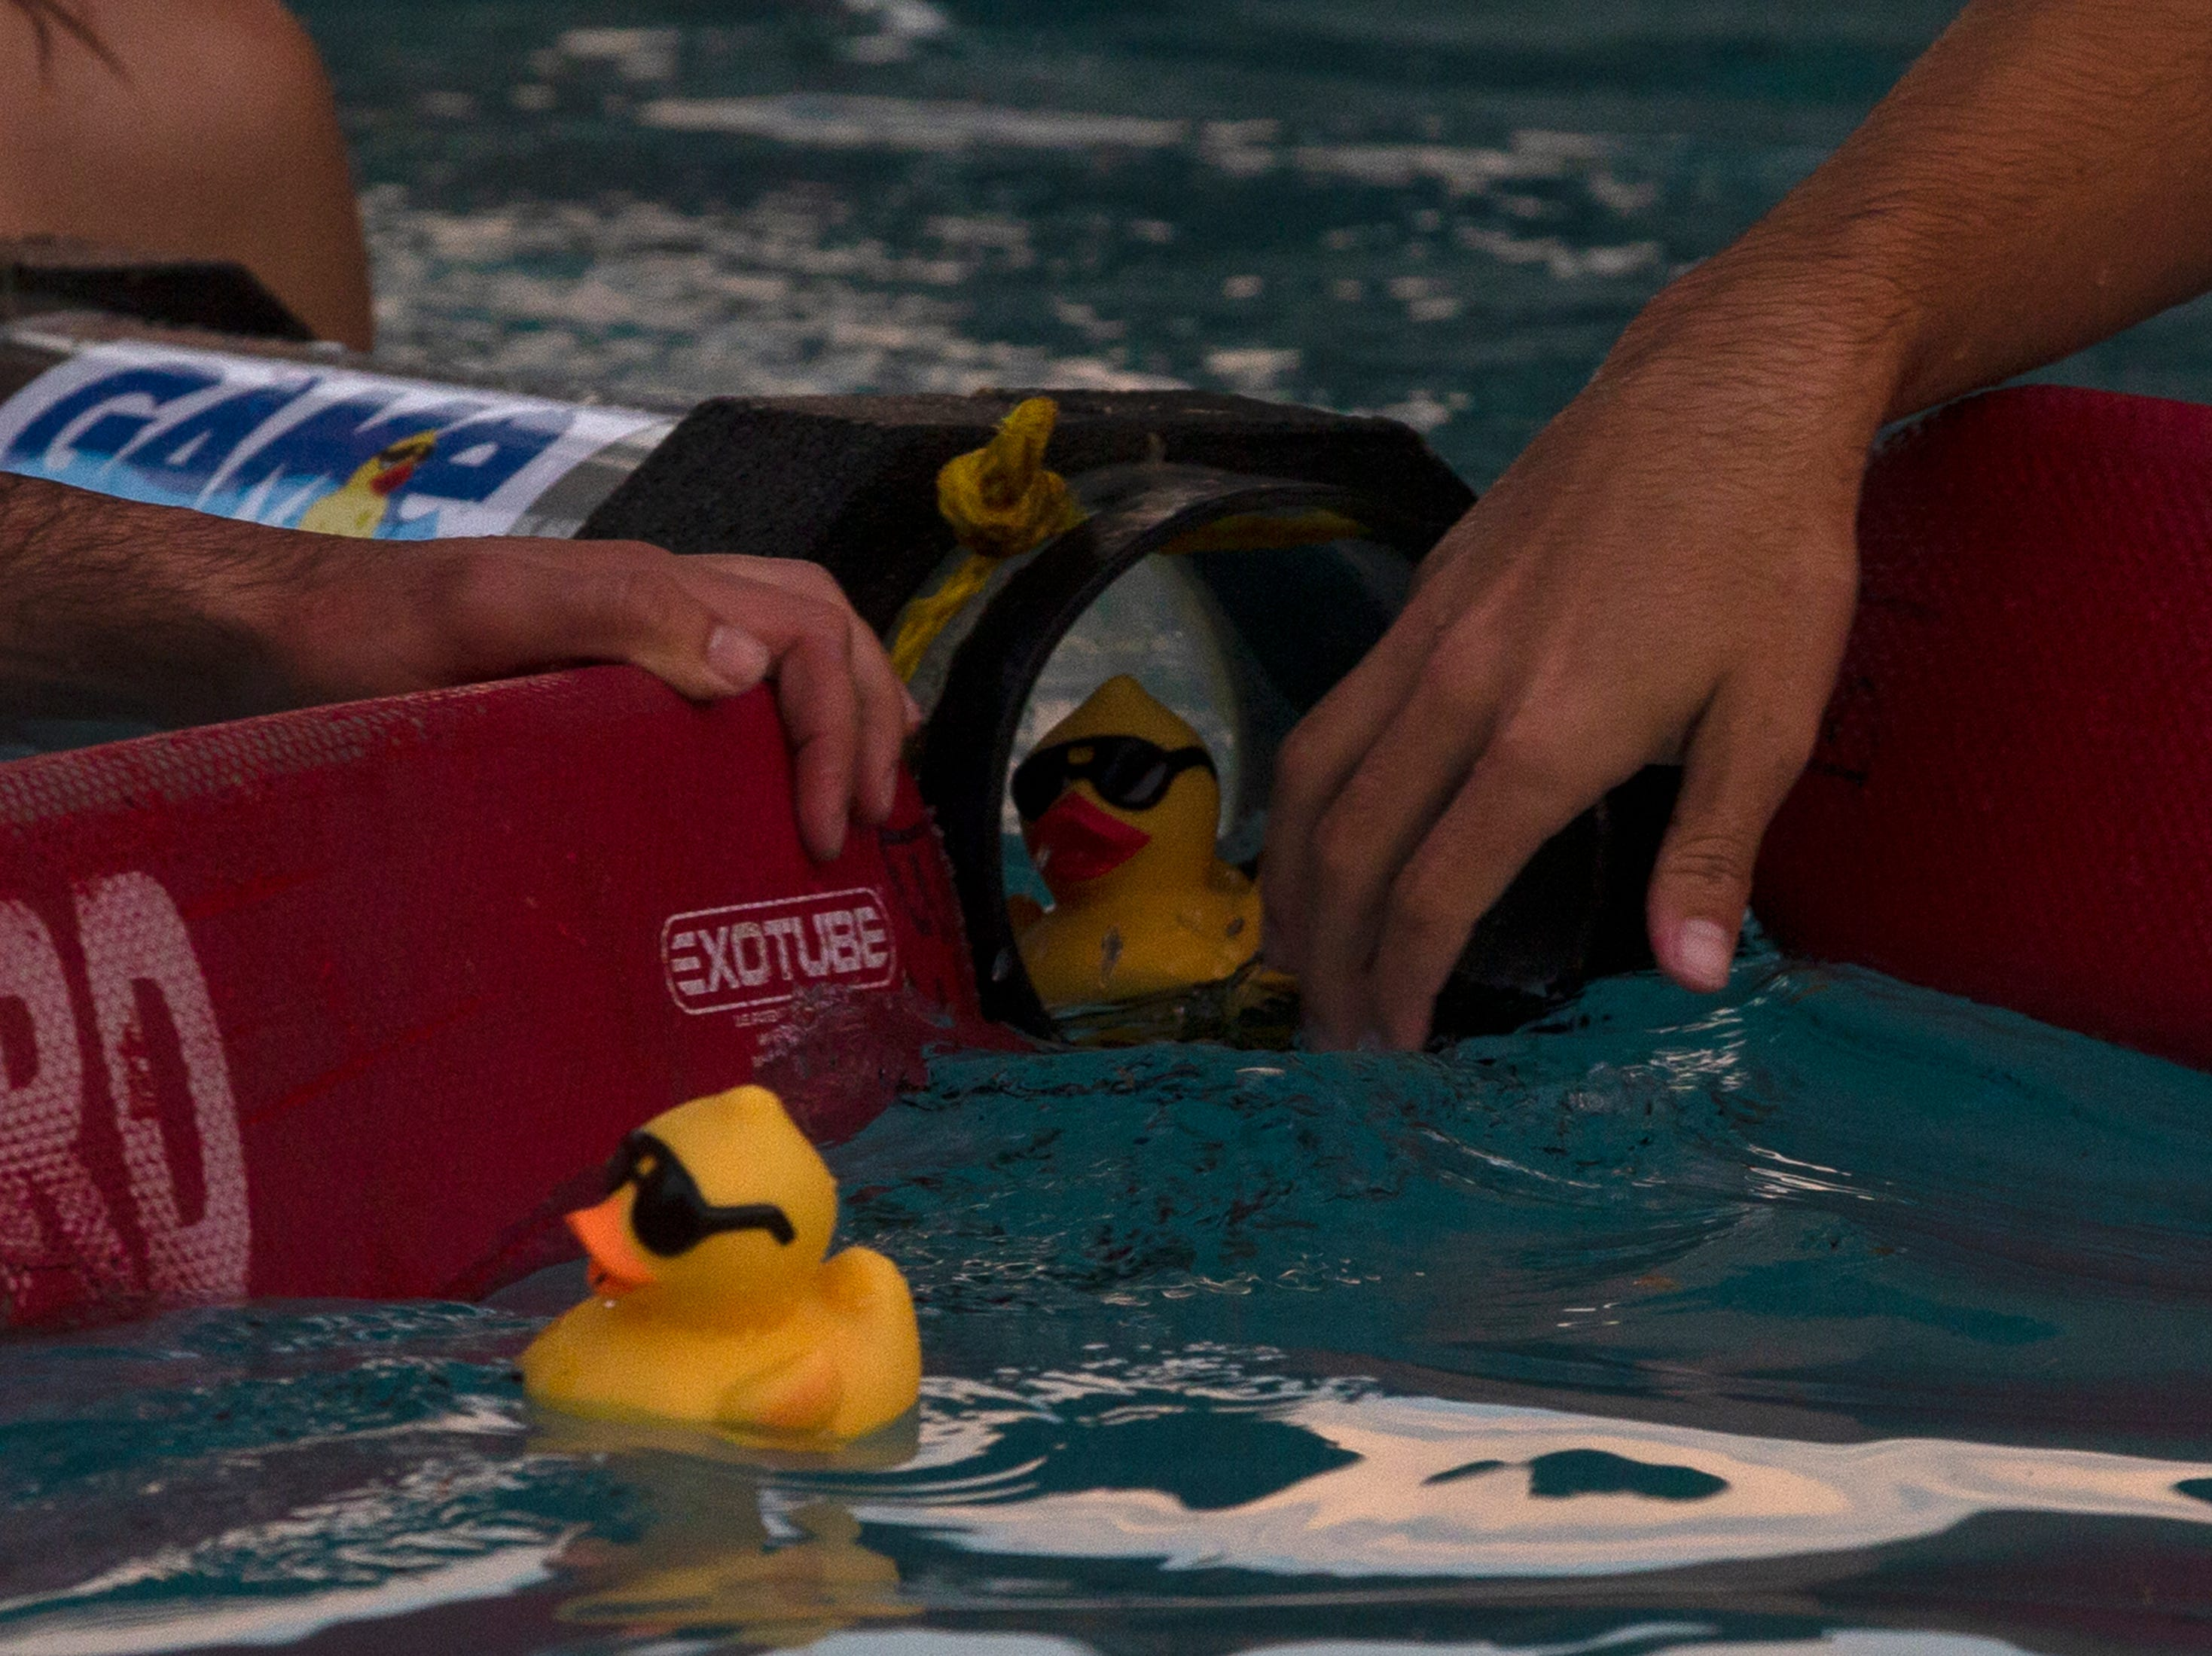 Sun-N-Fun Lagoon lifeguards collect the first and second place ducks during Saturday's Great Naples Duck Race at Sun-N-Fun Lagoon in North Collier Regional Park.